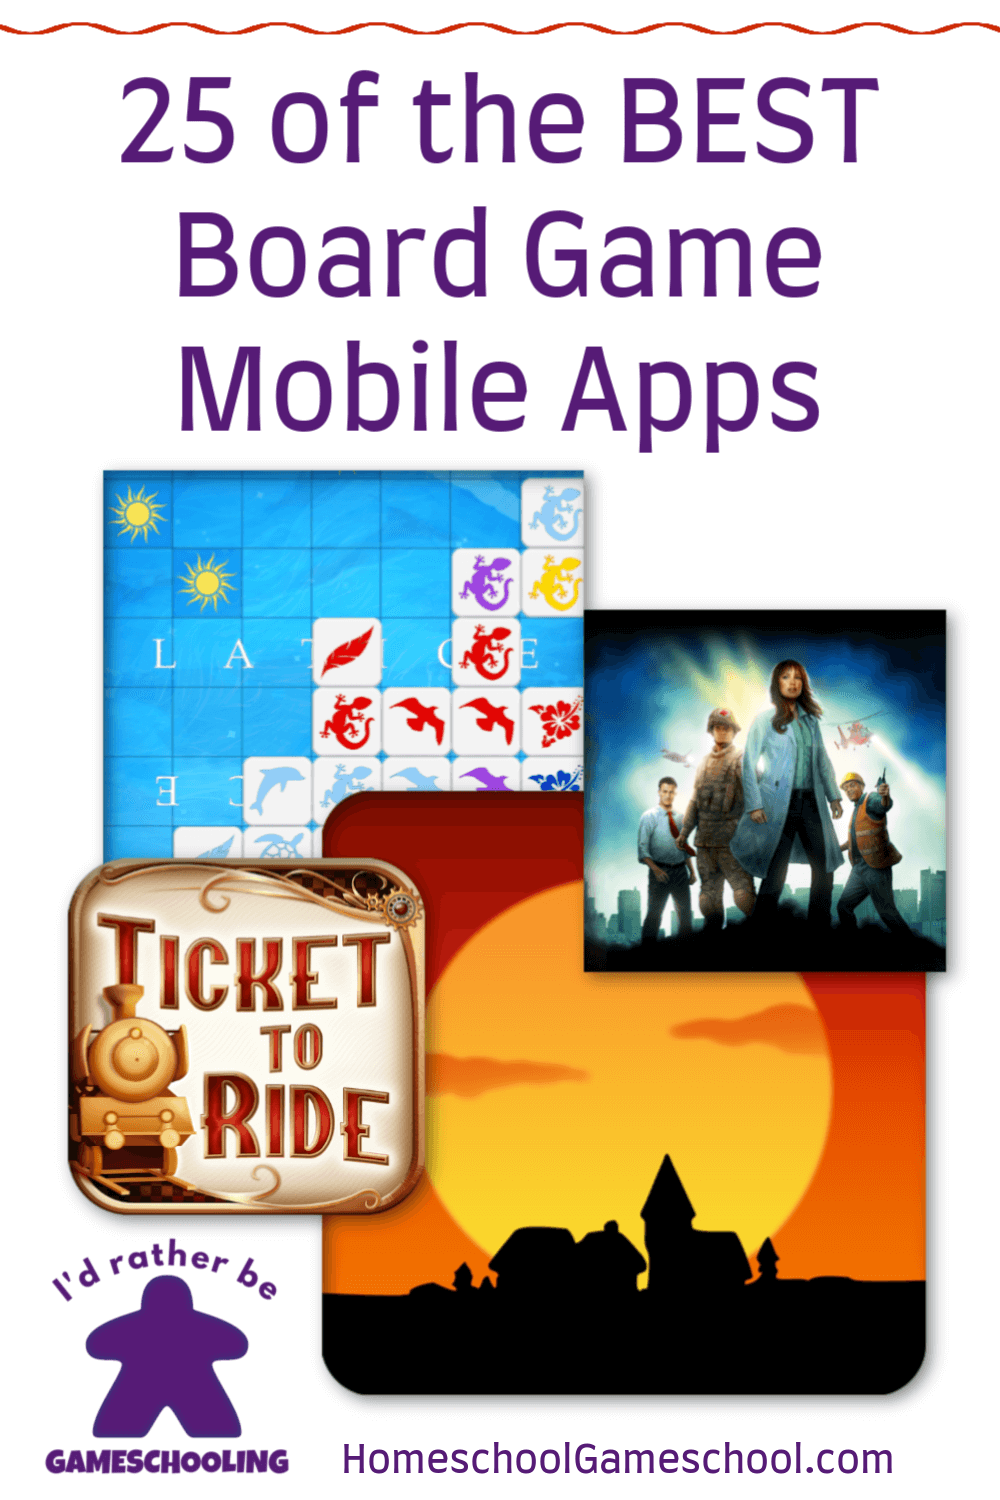 25 of the Best Board Game Apps